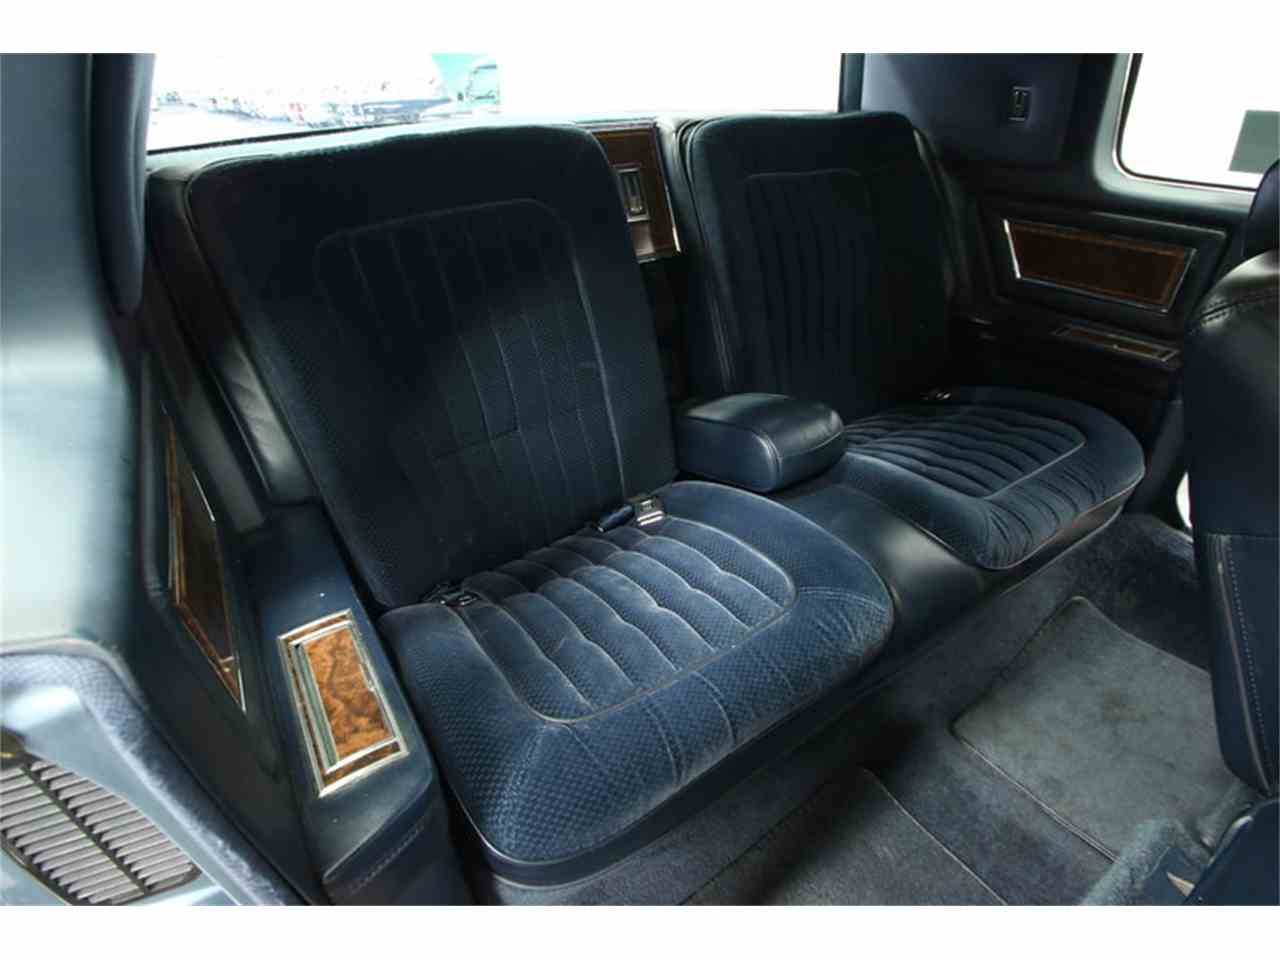 Large Picture of '85 Oldsmobile Toronado - $9,995.00 Offered by Streetside Classics - Tampa - JPY6